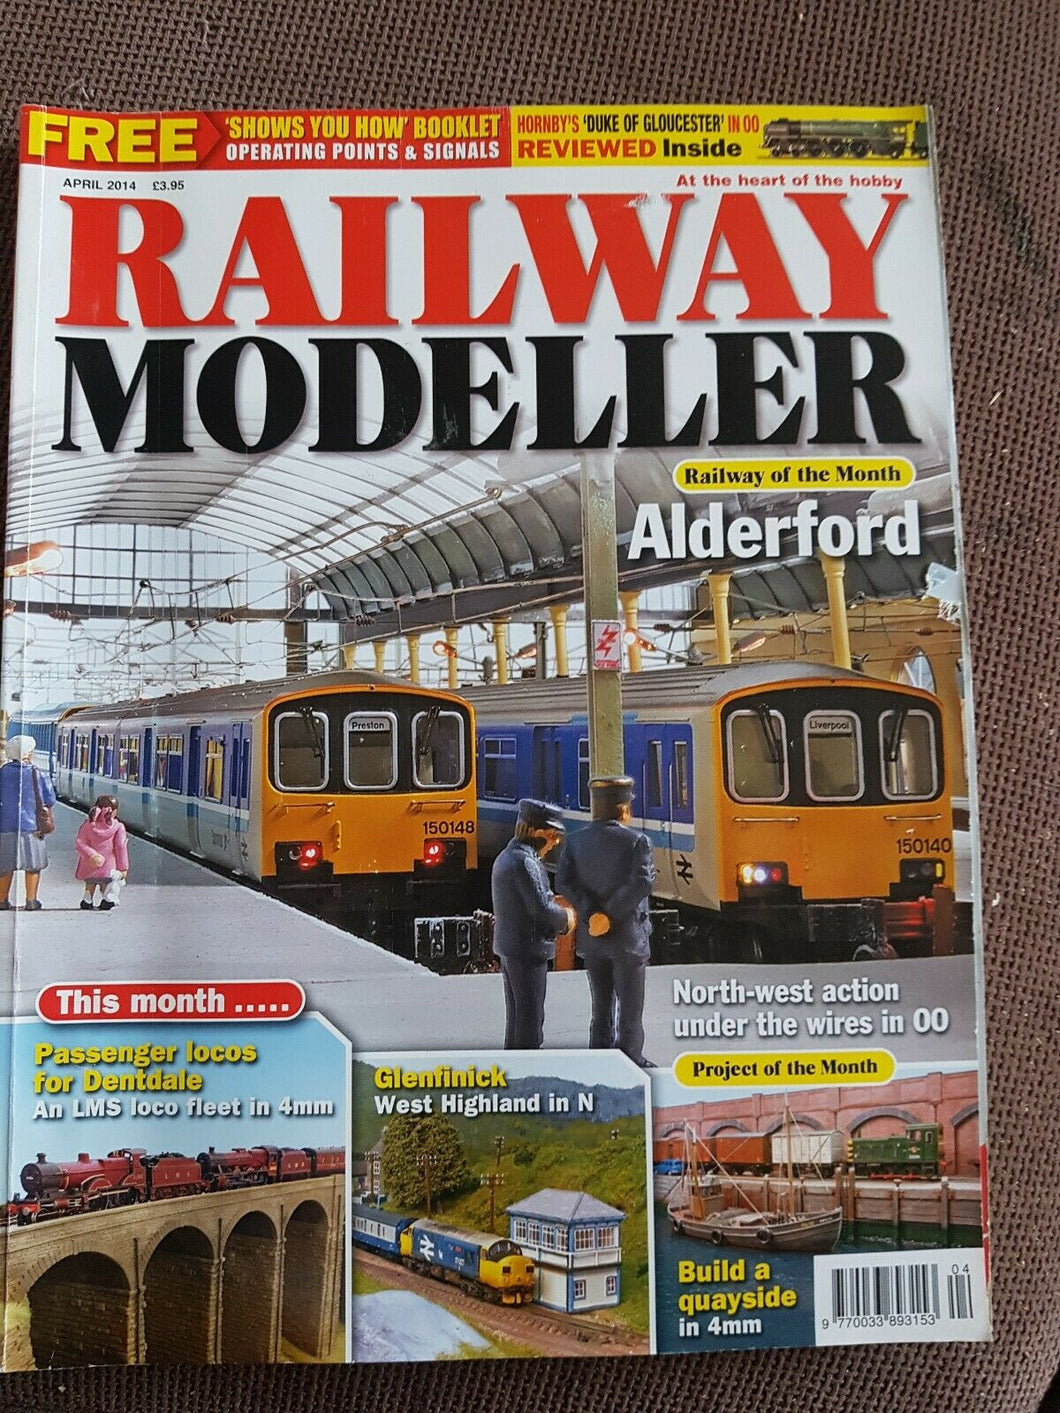 RAILWAY Modeller Magazine April 2014